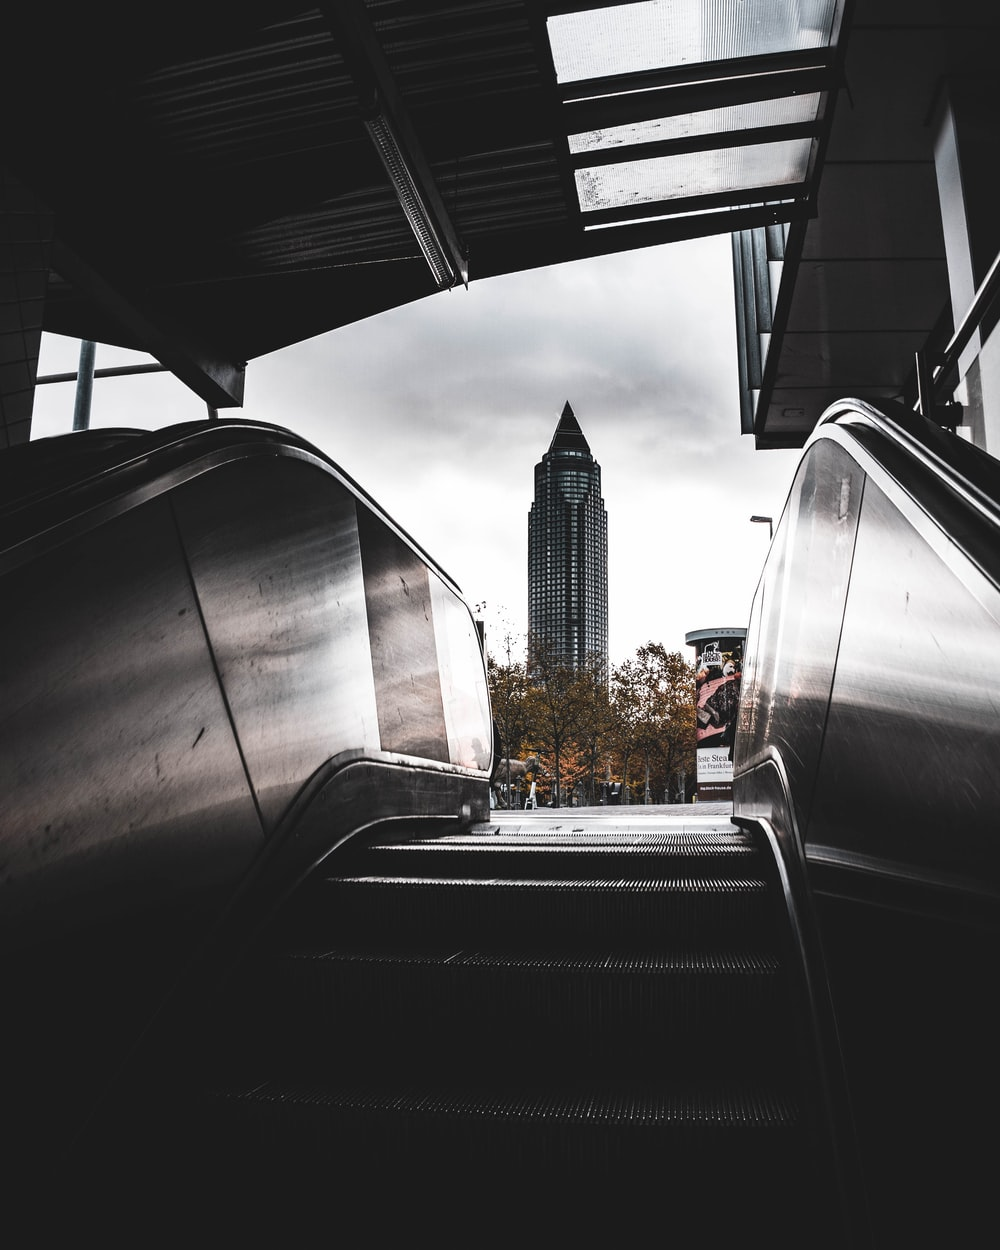 grey and black escalator with view of high-rise building